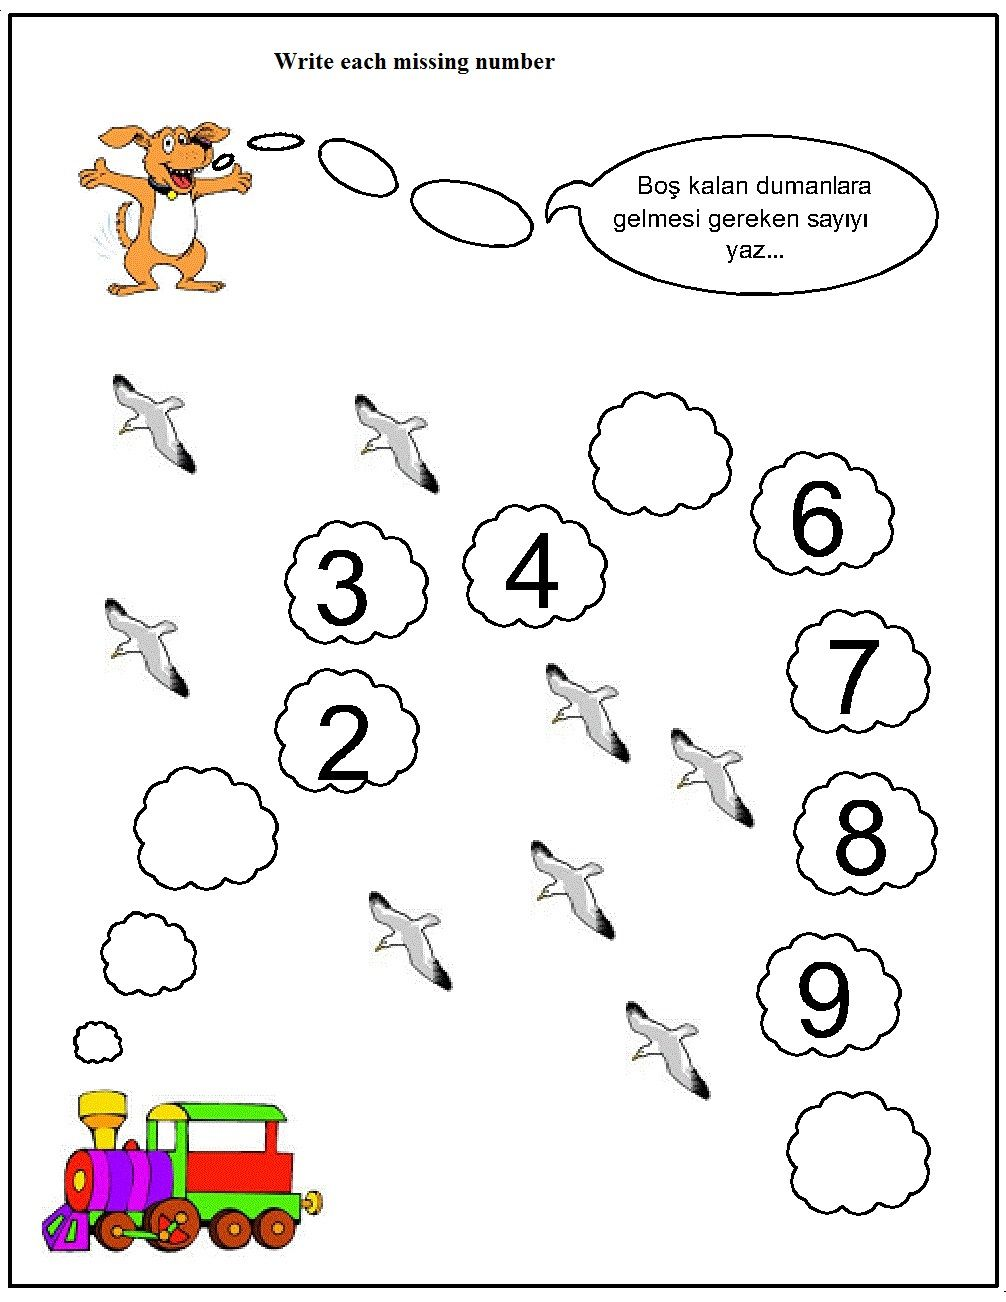 missing number worksheet for kids (16) | Kiddie Corner | Pinterest